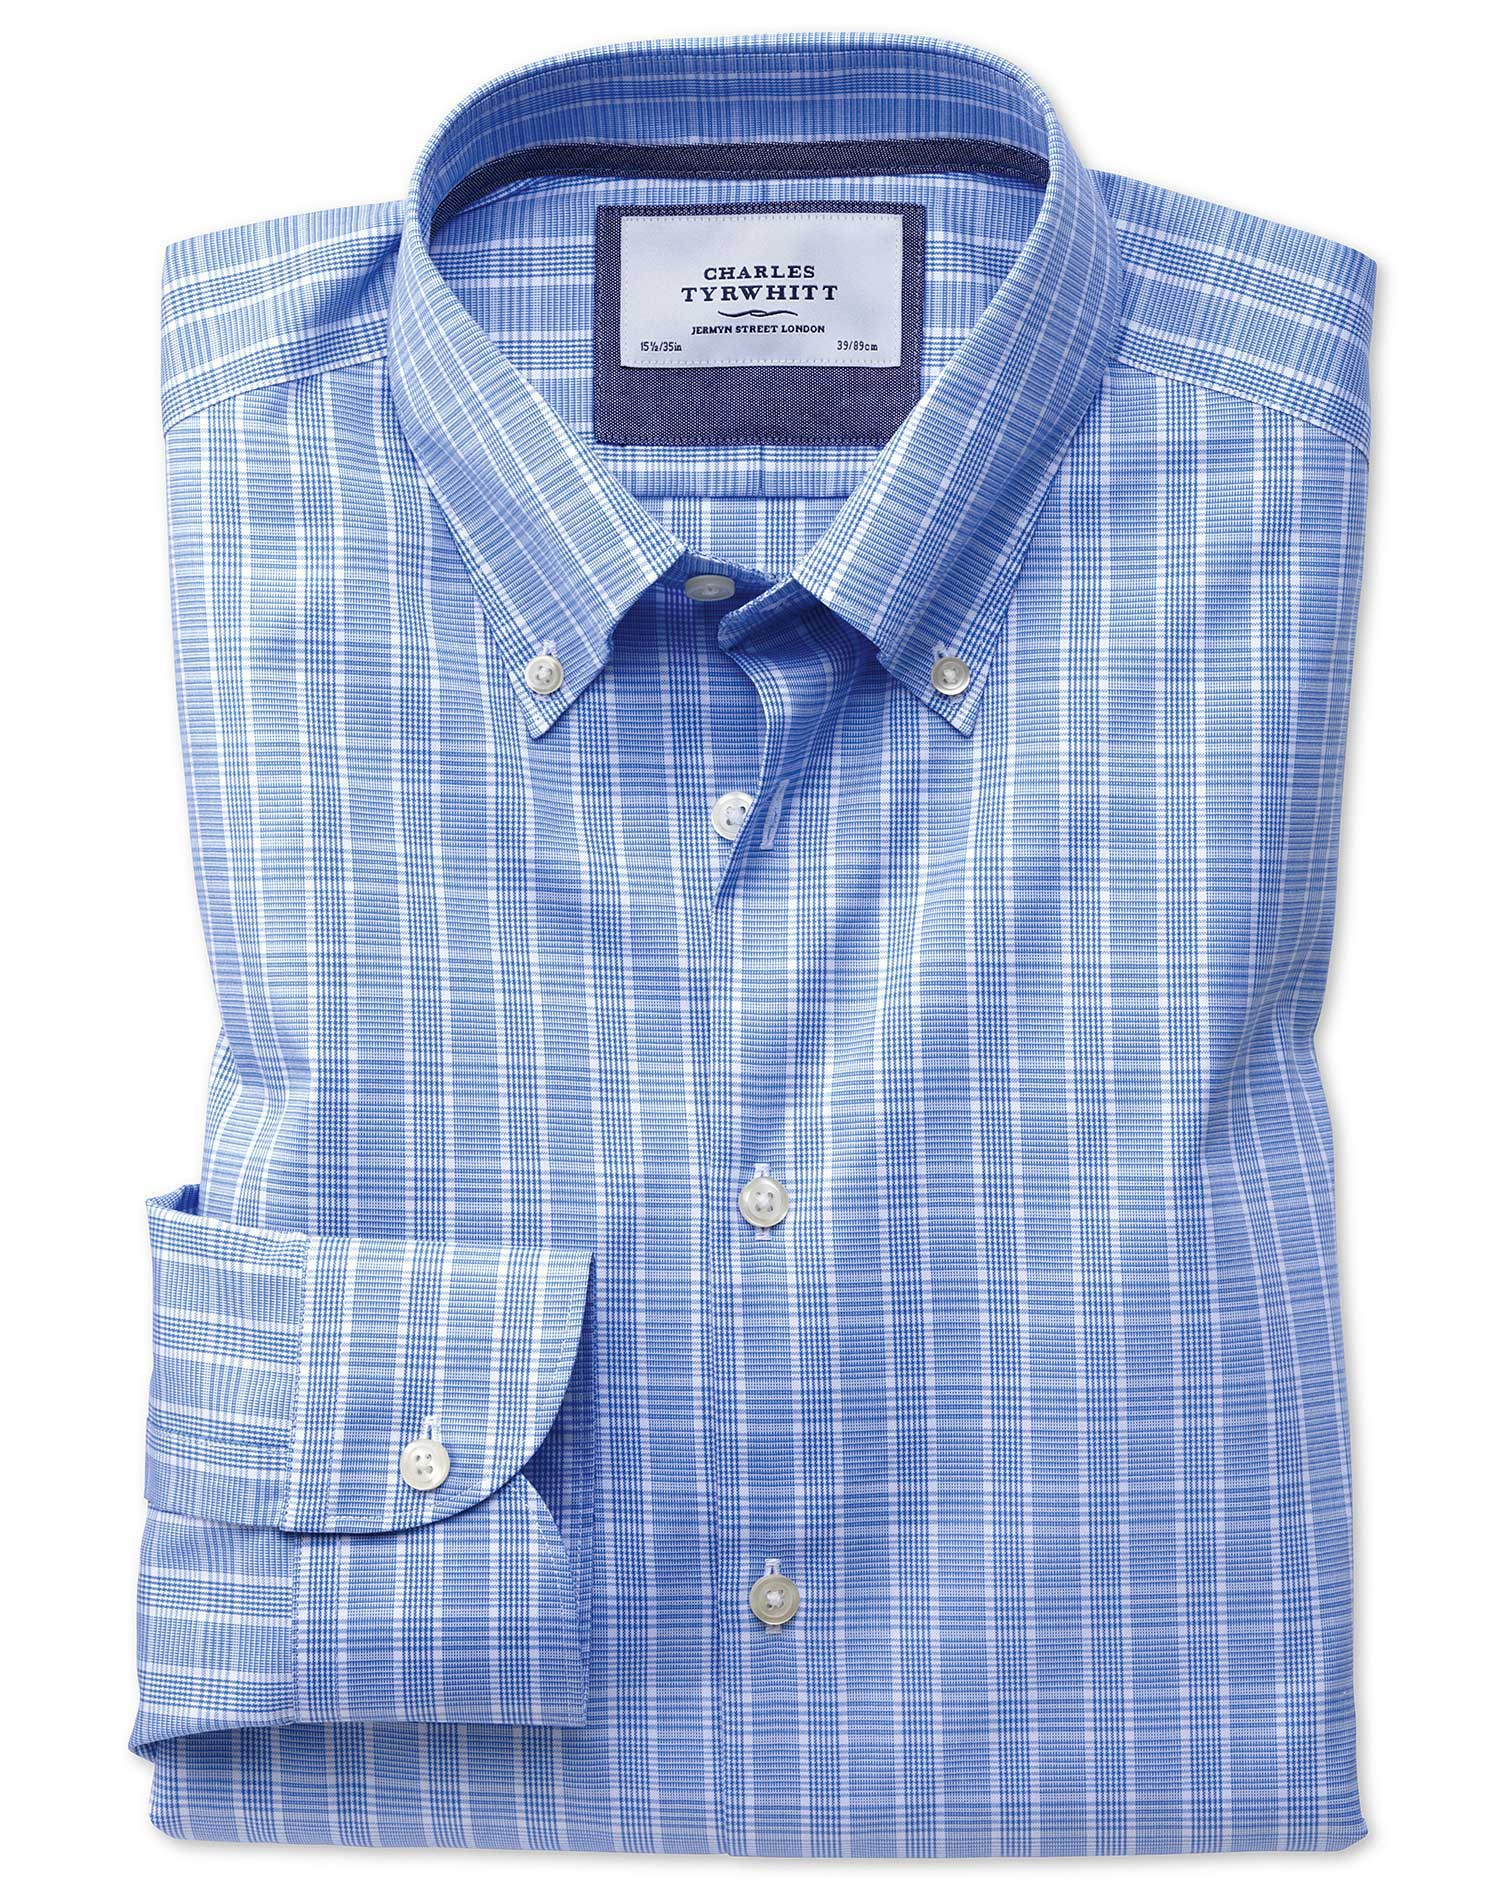 Extra Slim Fit Button-Down Business Casual Non-Iron Prince Of Wales Light Blue Cotton Formal Shirt S